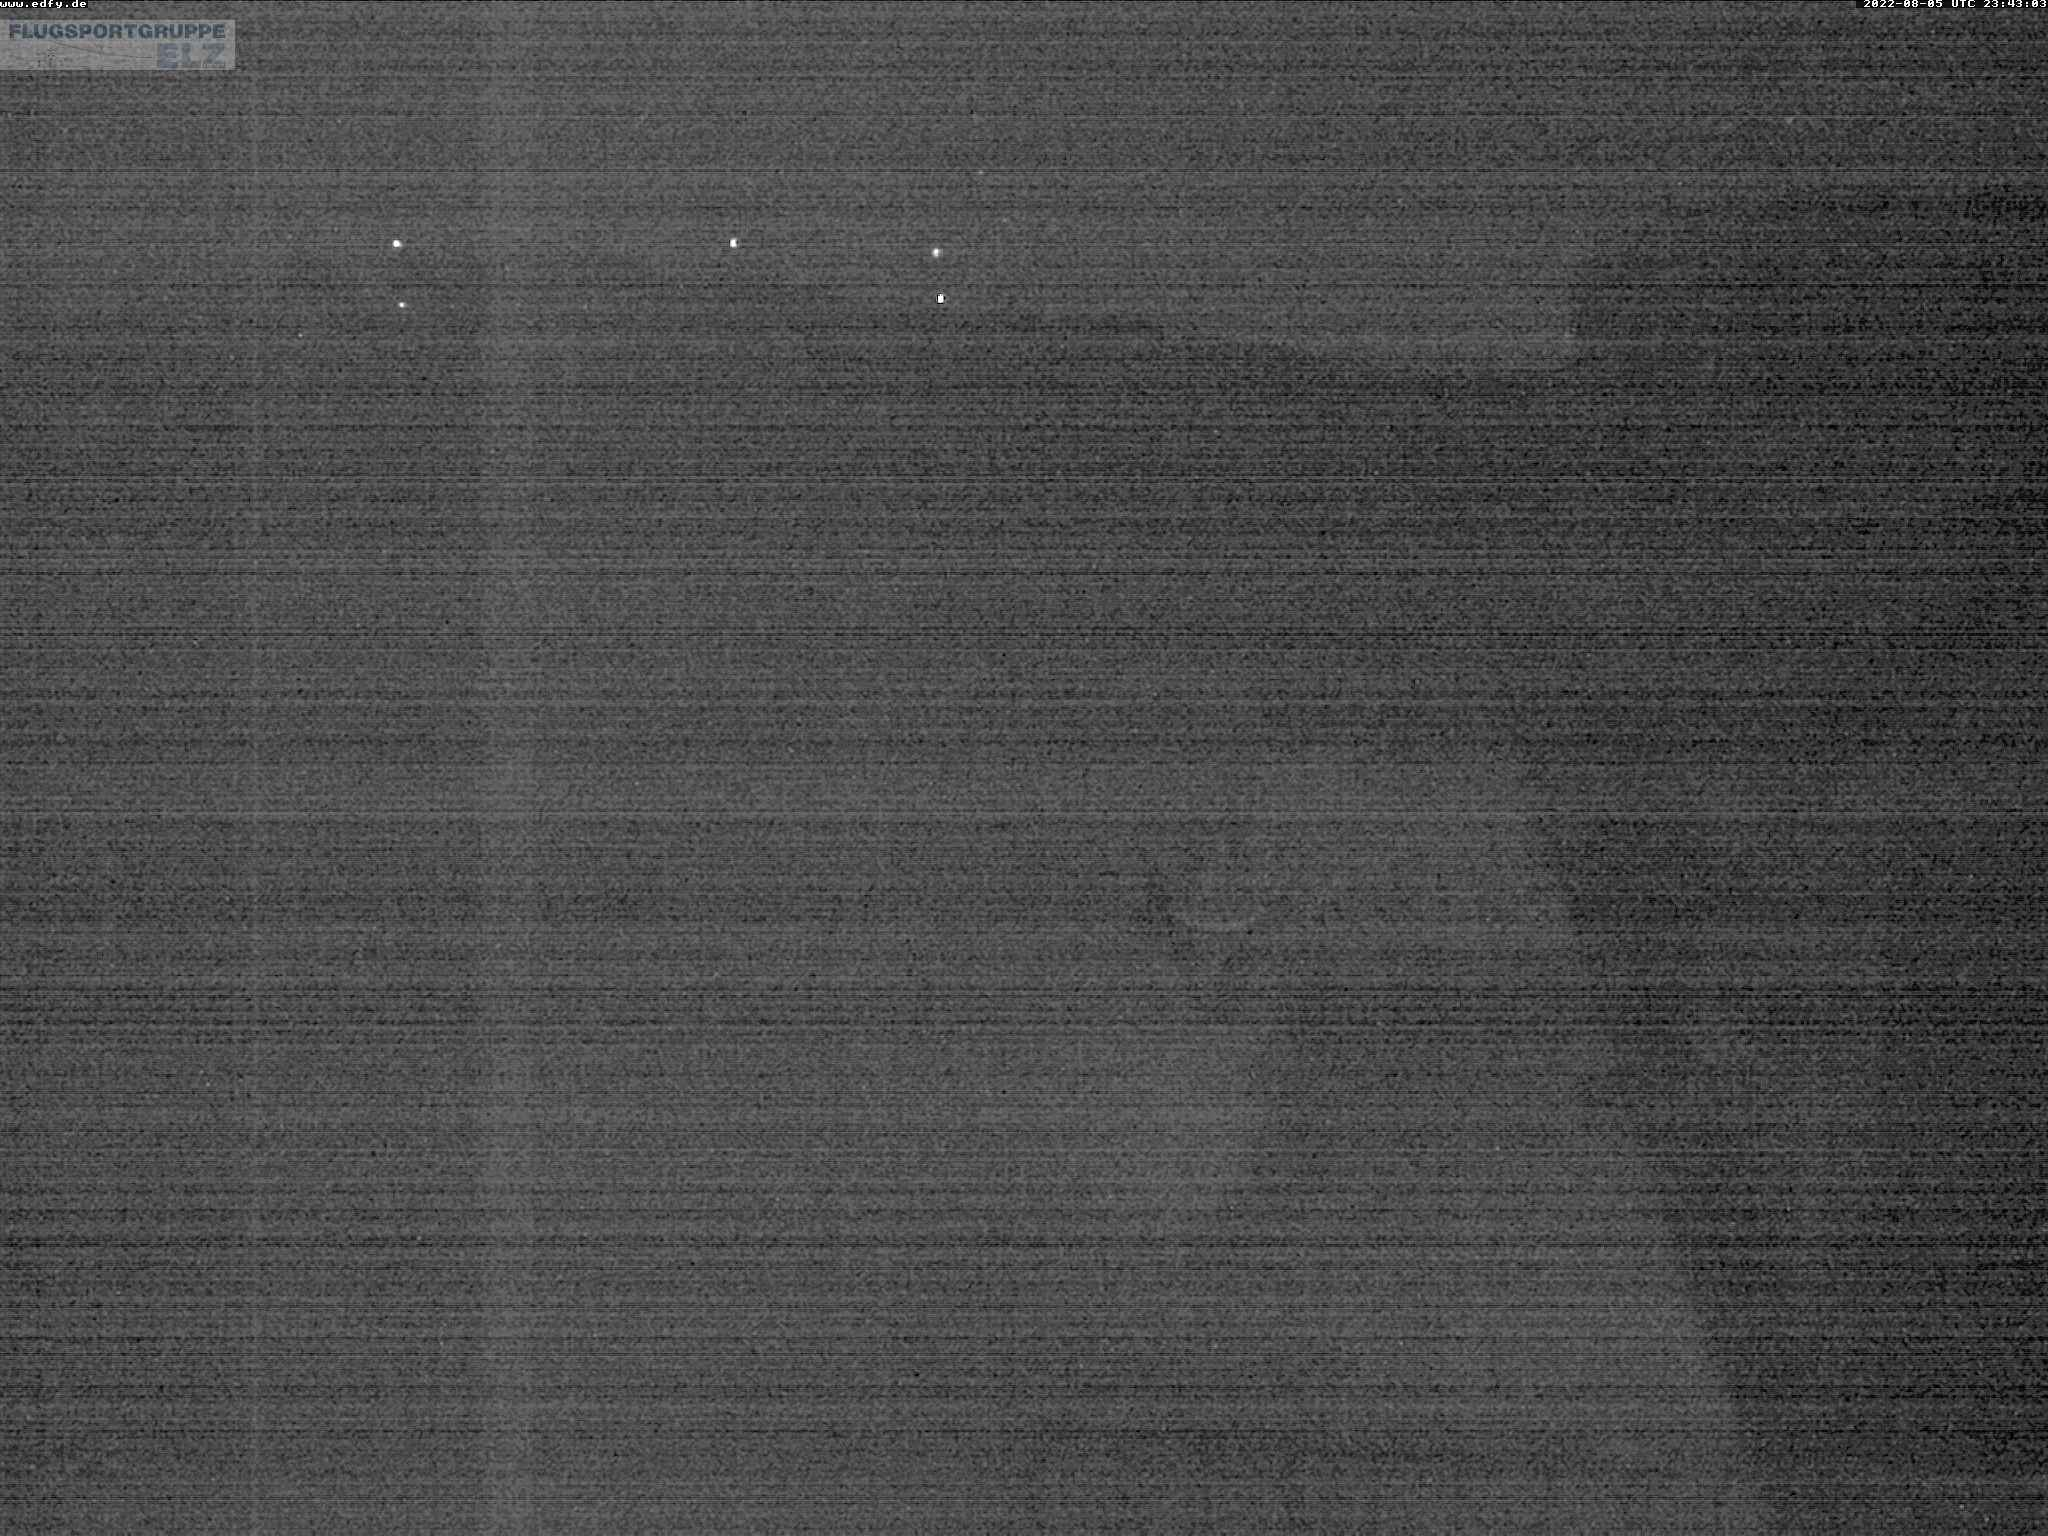 Webcam Flugplatz Elz